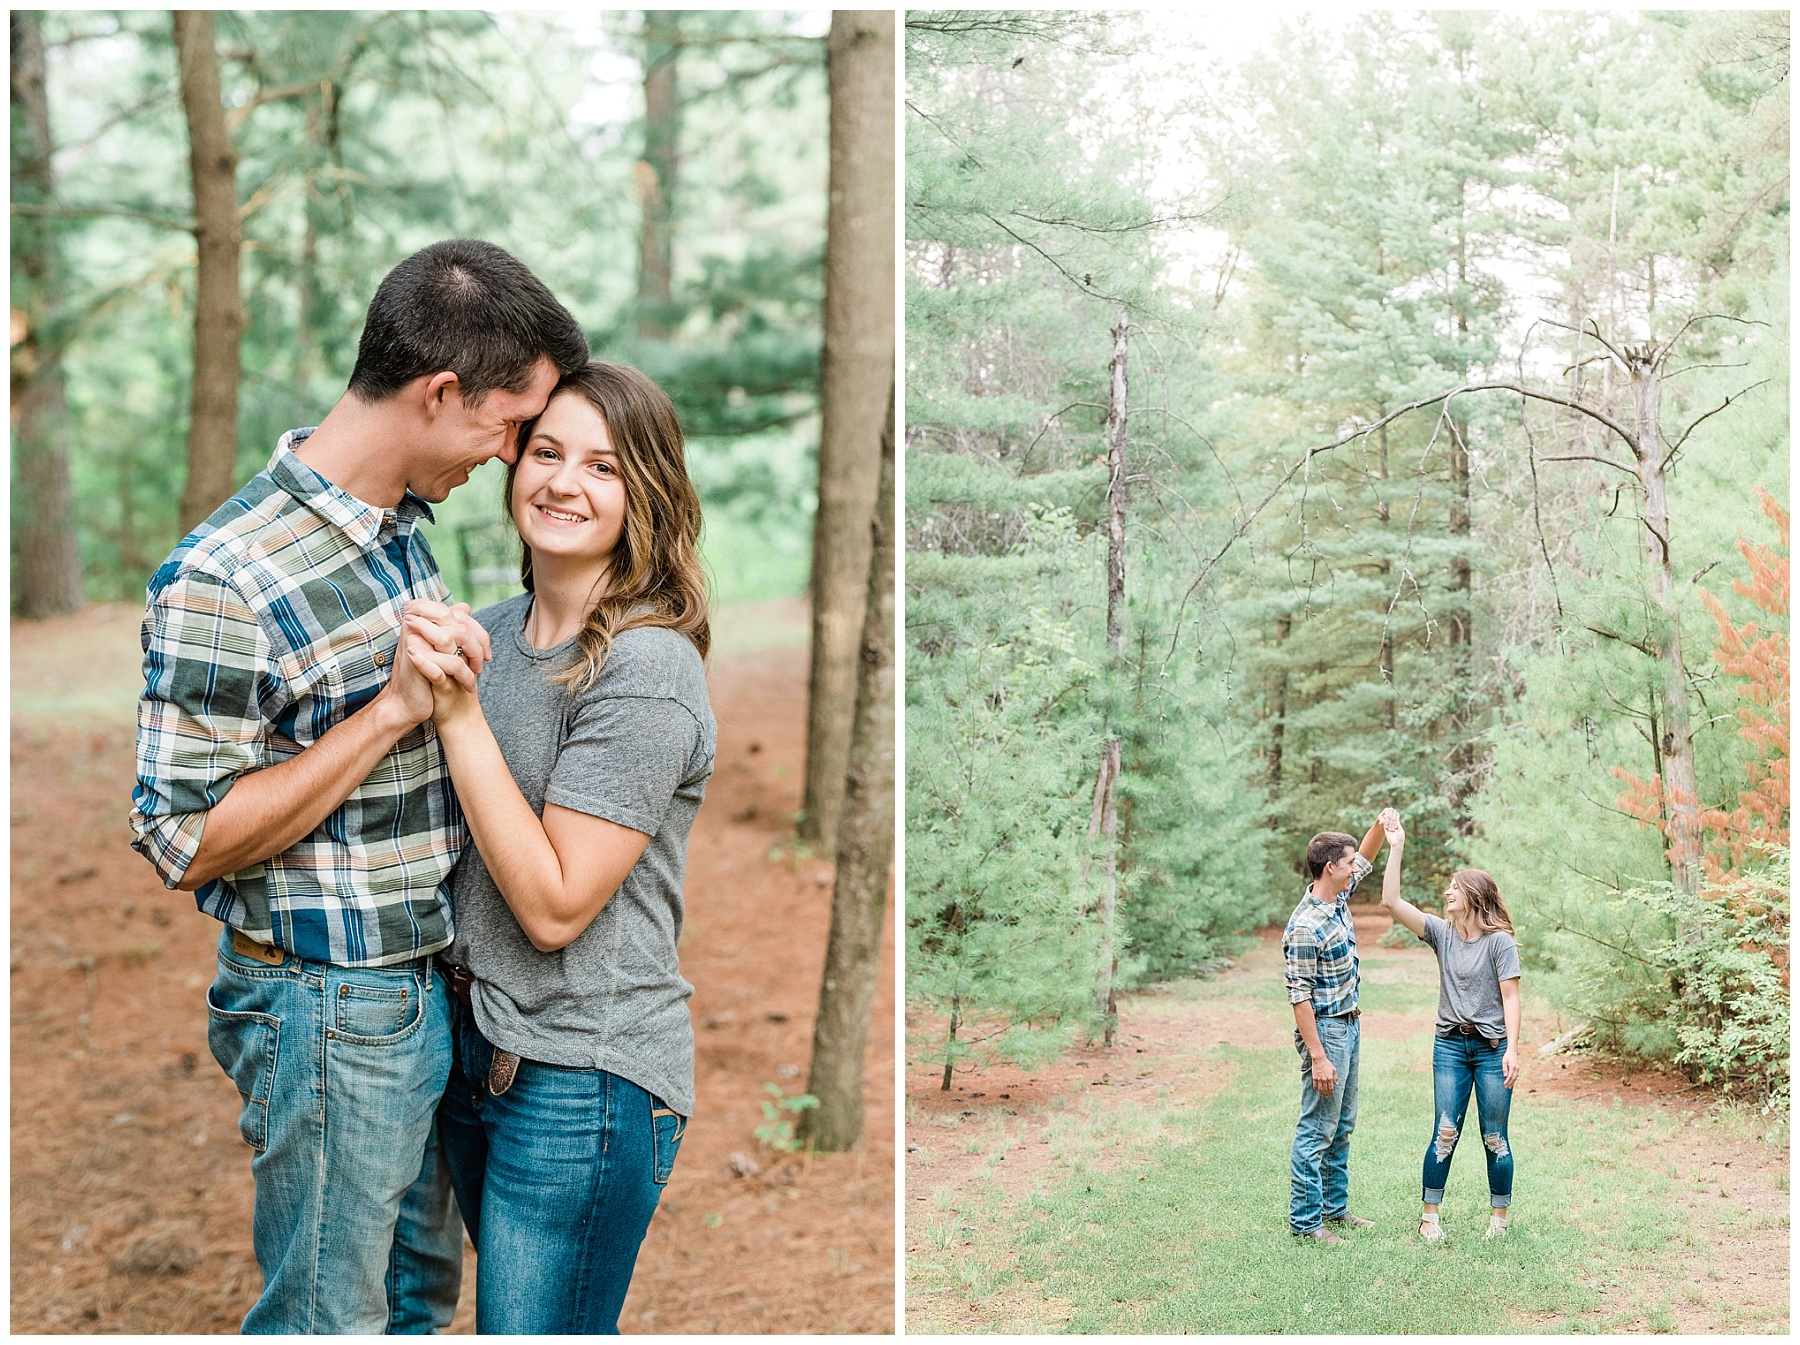 Wanderlust Engagement Session in the Pines with Sunset Canoe Ride in Blue Green Lake in Mid Missouri by Kelsi Kliethermes Photography_0002.jpg